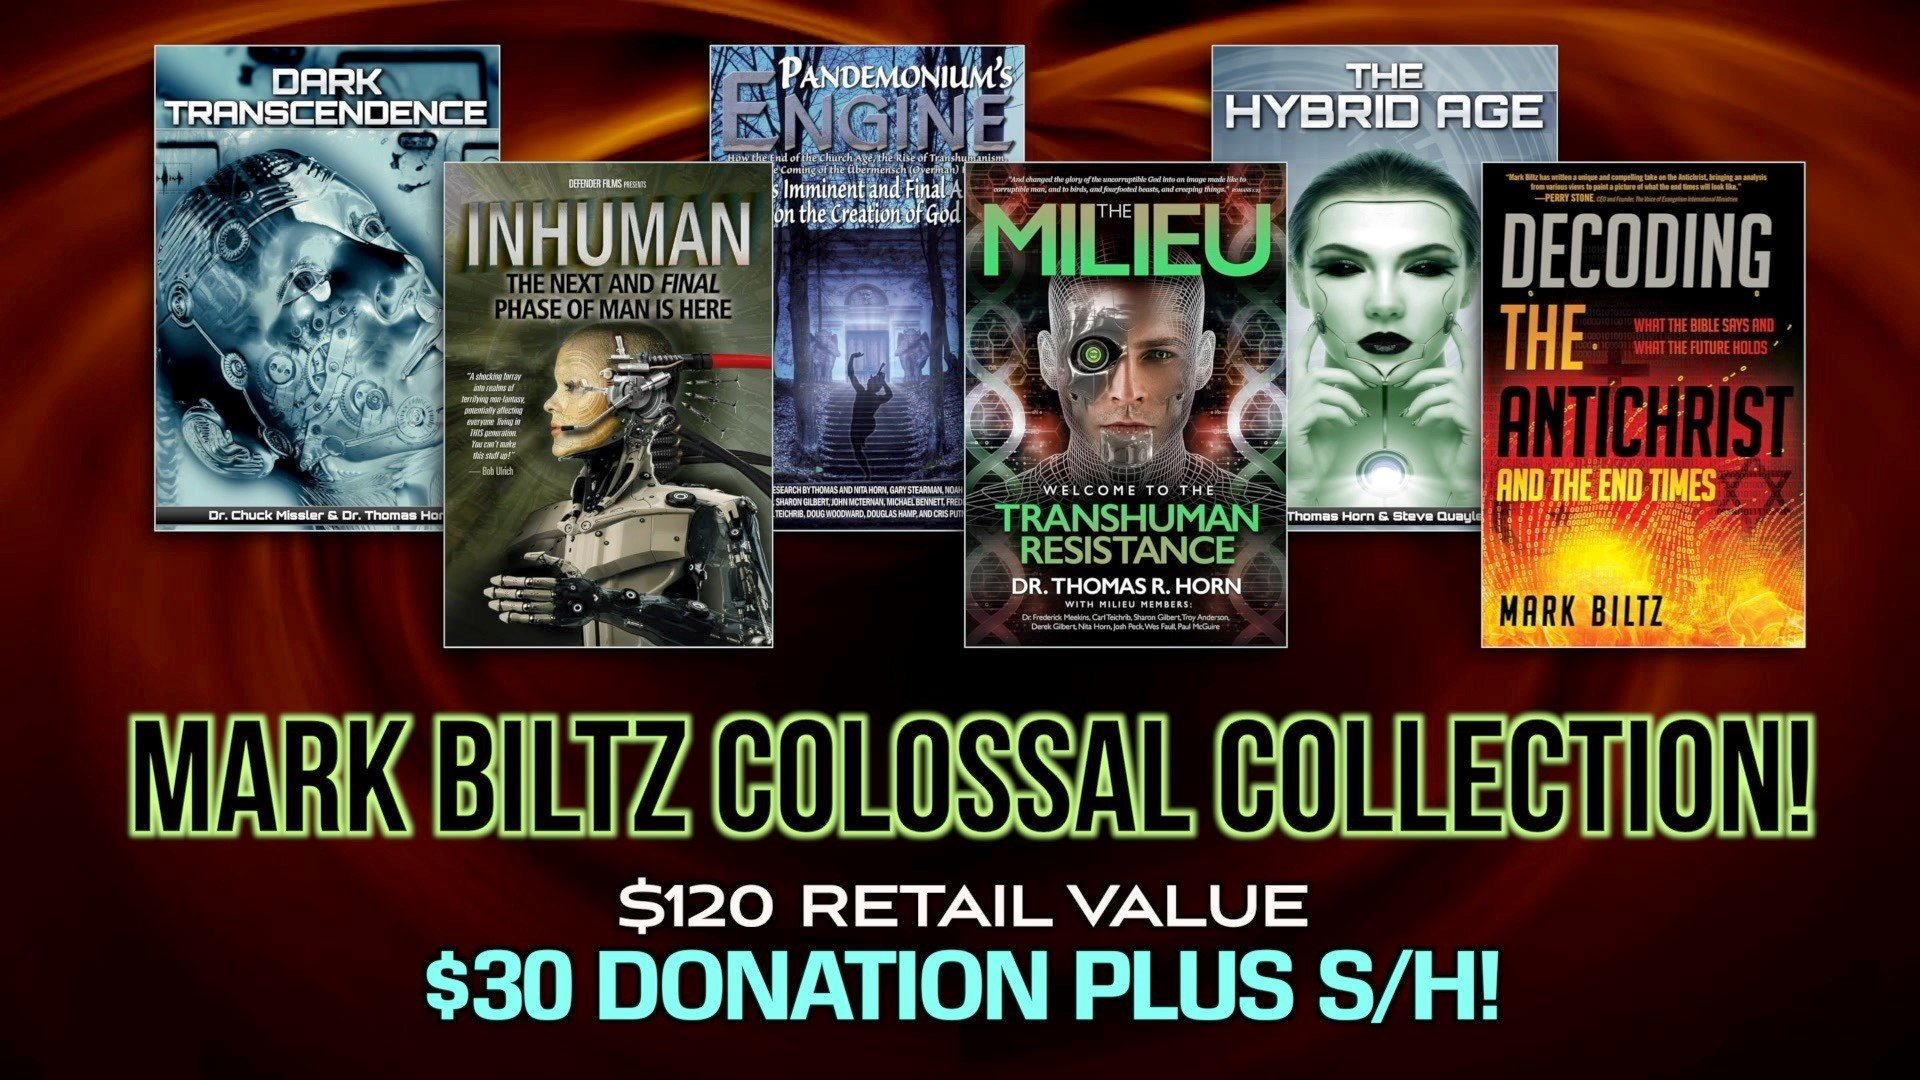 WOW! IT'S THE BEST DEAL ANYWHERE ON MARK BILTZ NEW BOOK! COMES WITH FREE BOOKS, AWARD-WINNING MOVIE, AUDIO SETS FOR A LIMITED TIME!